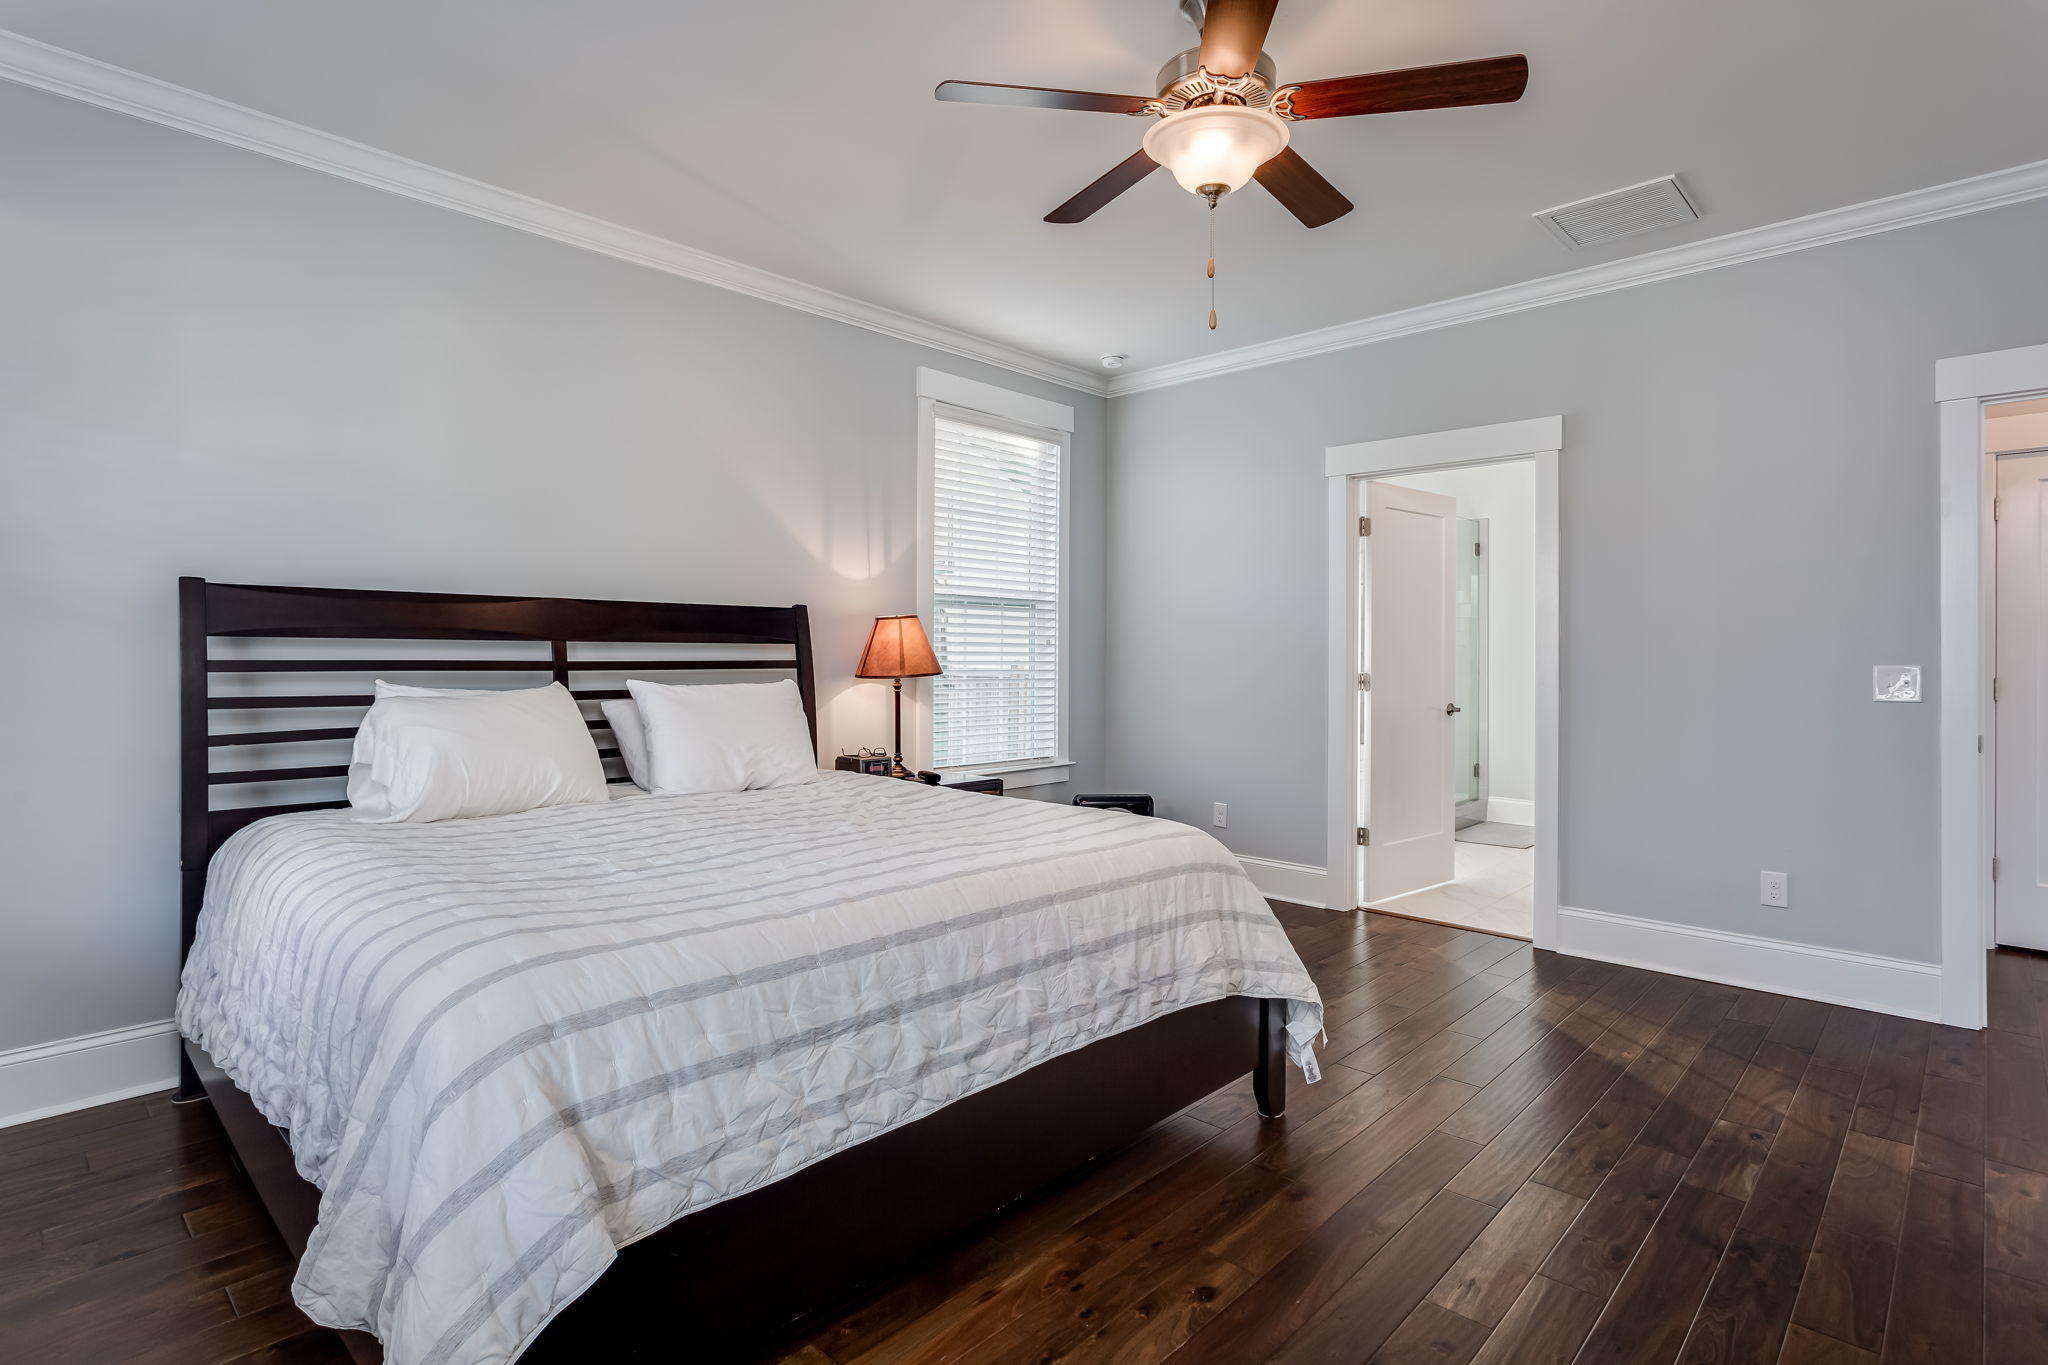 The Village at Stiles Point Homes For Sale - 849 Shutes Folly, Charleston, SC - 50